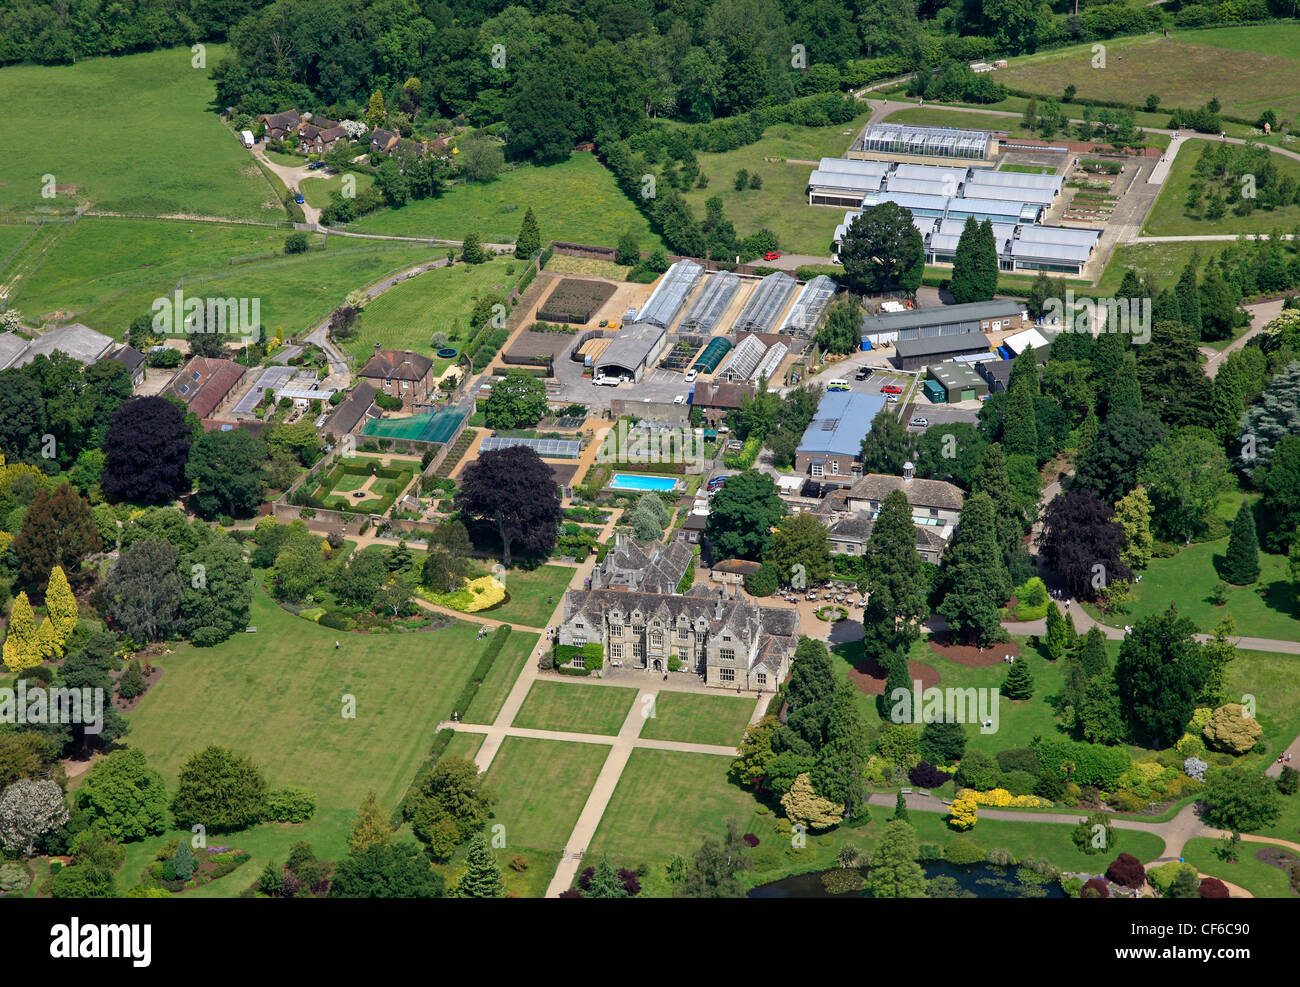 Aerial view of Wakehurst Place, Sussex - Stock Image